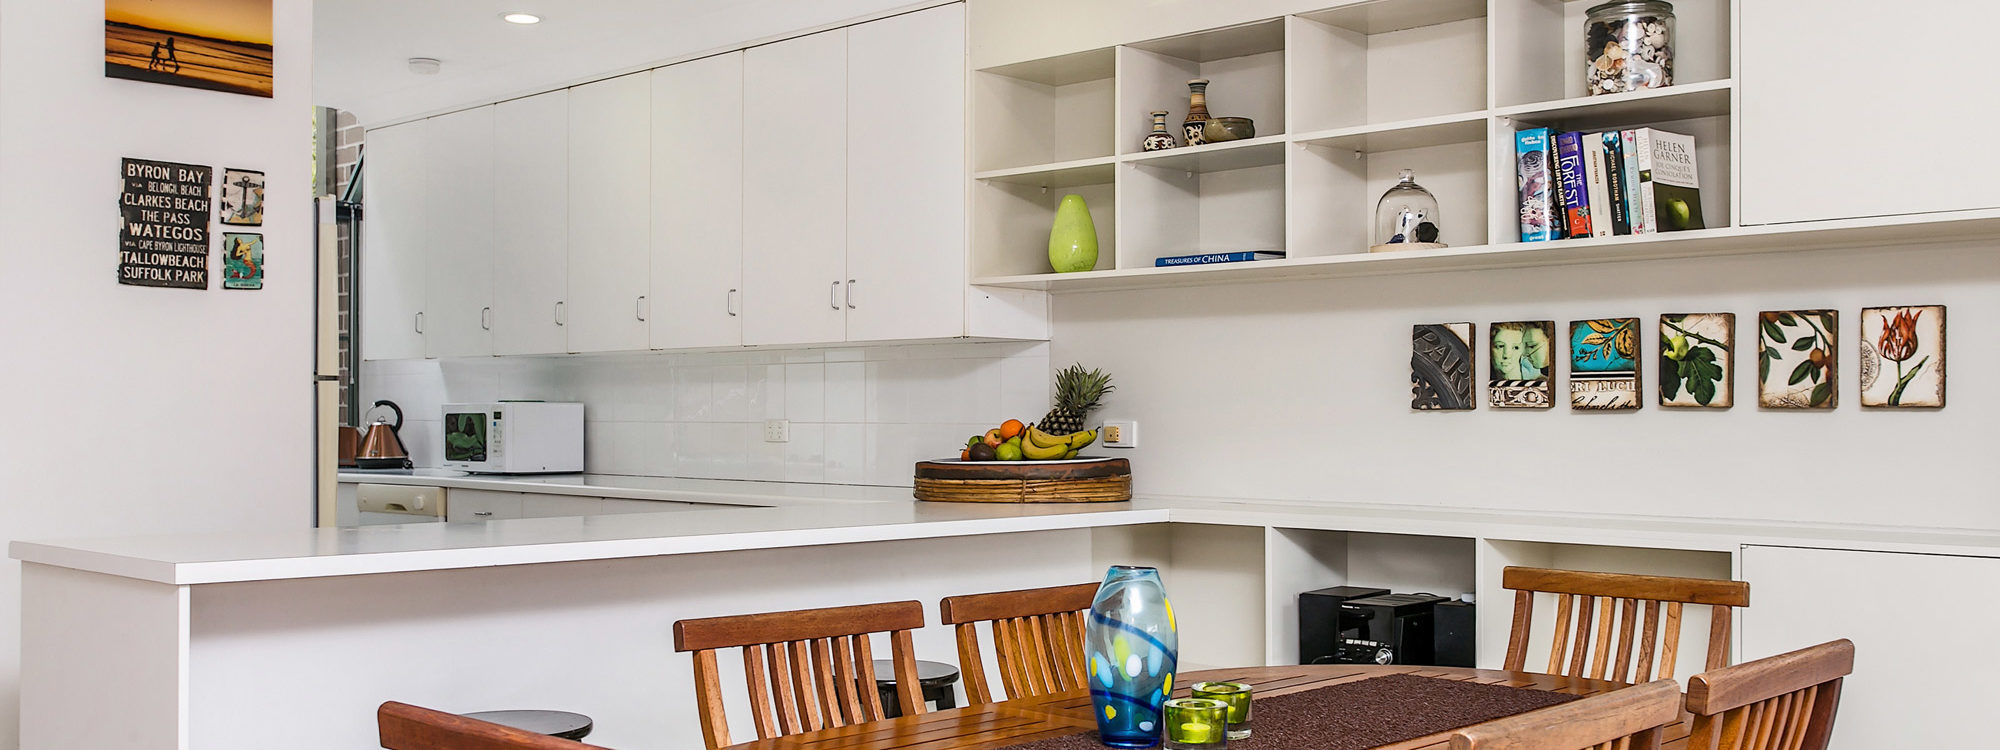 7 James Cook Apartment - Dining